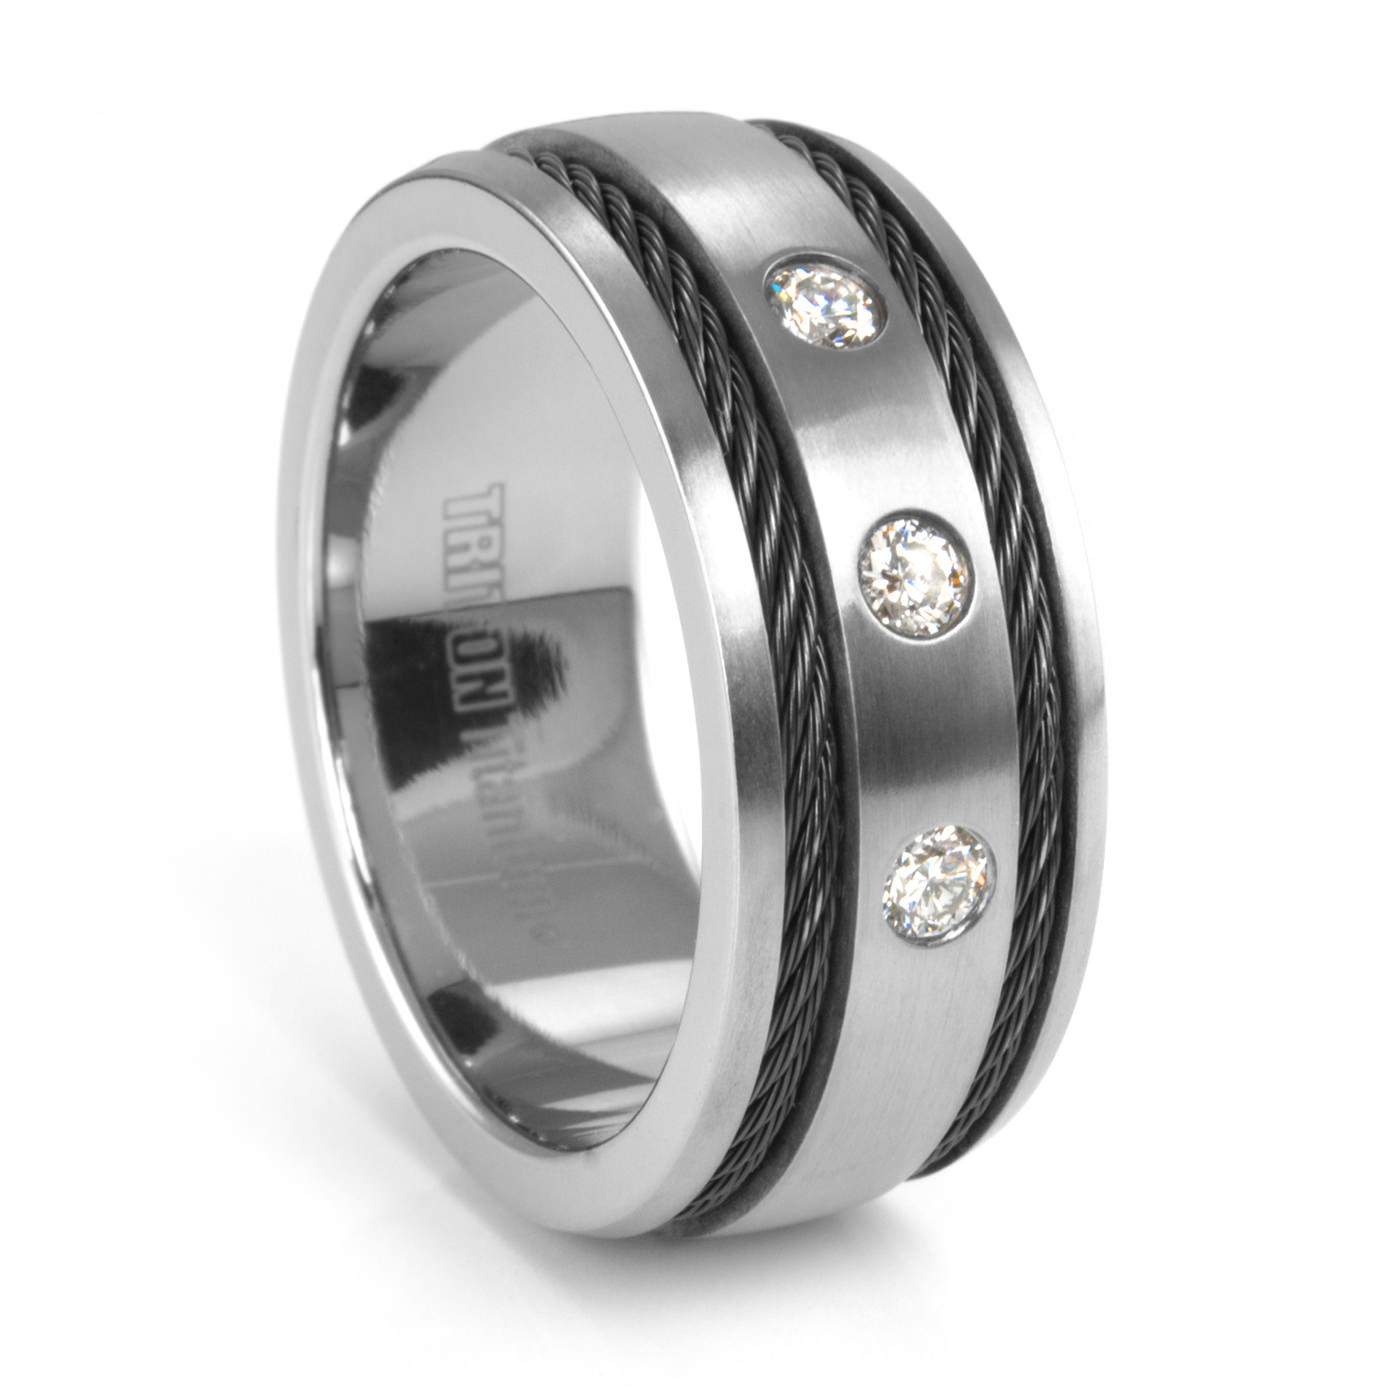 s rings diamond wedding stripe awesome band triton com in bands men manworksdesign tungsten